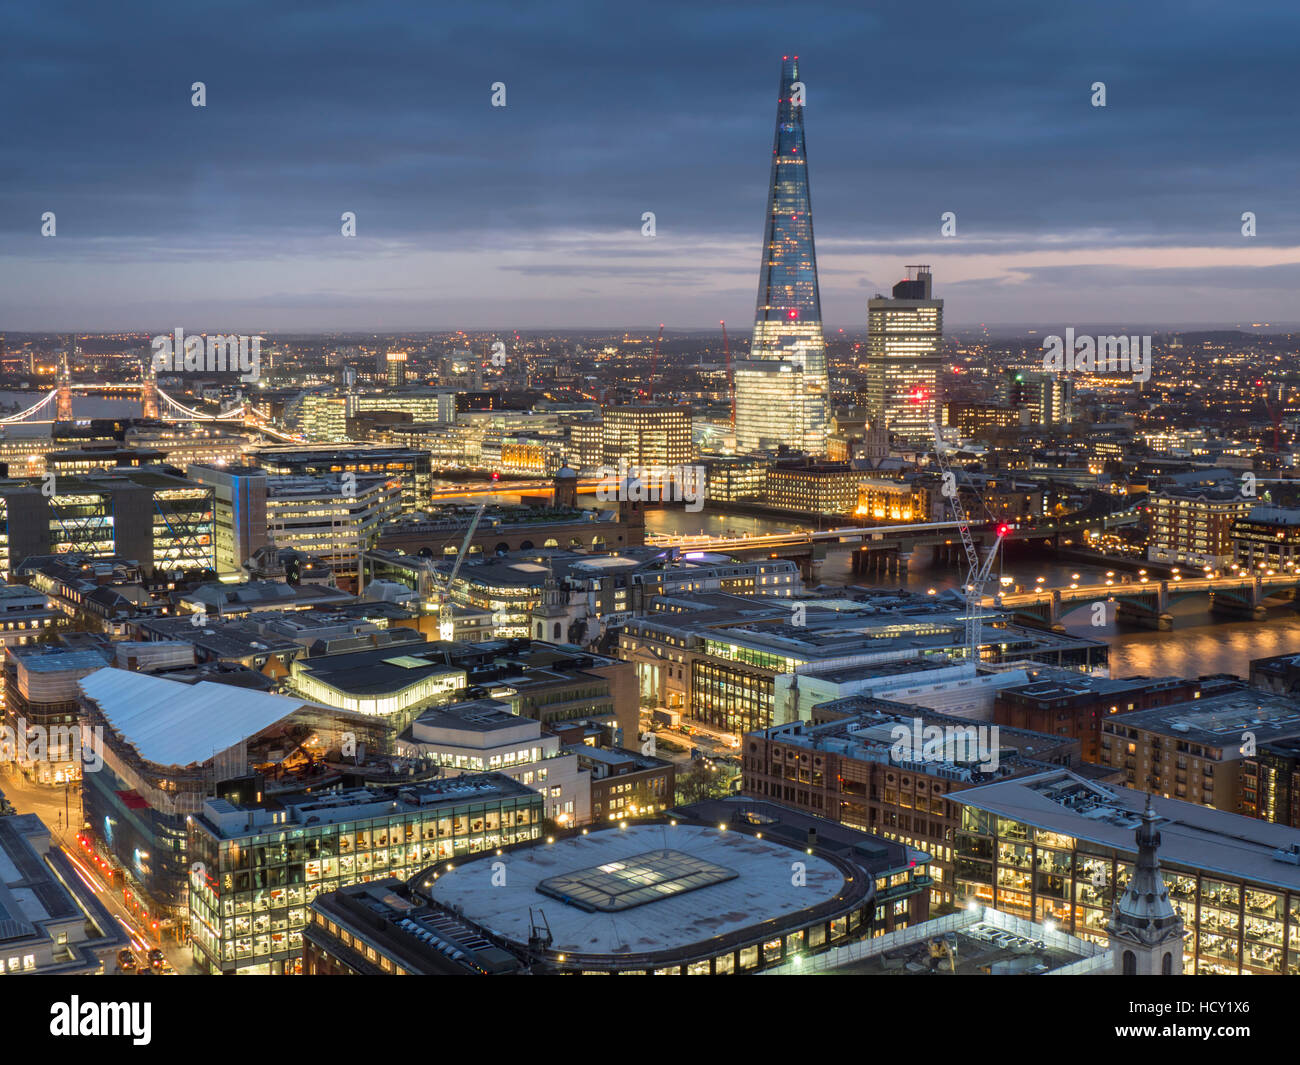 Stadtbild mit The Shard in der Abenddämmerung, London, UK Stockbild